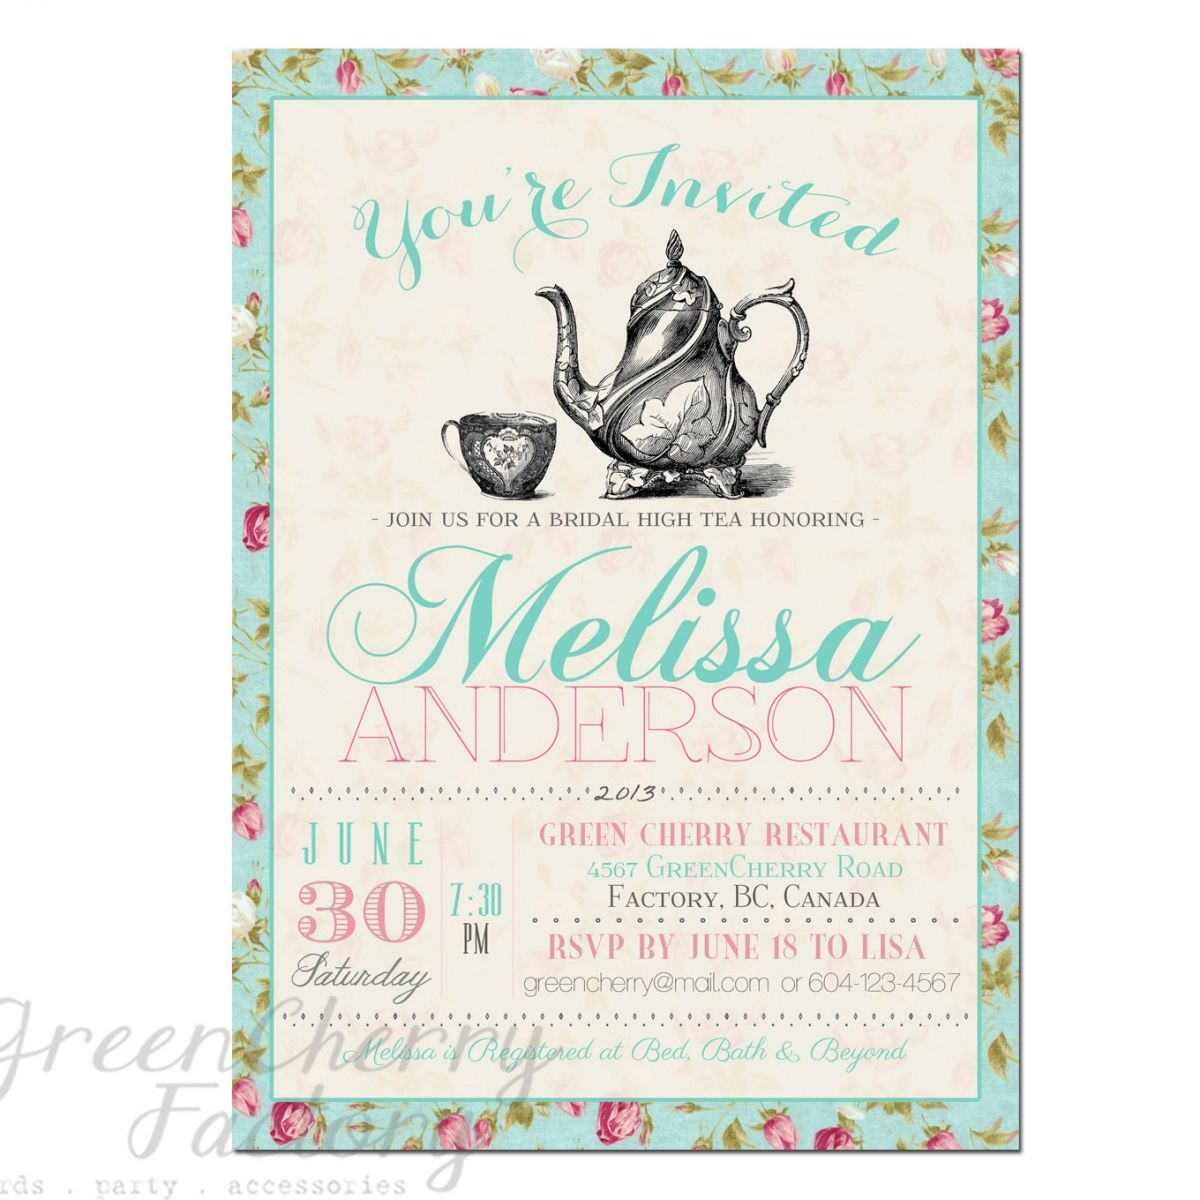 Tea Party Invitation Templates to Print | Free Printable ...